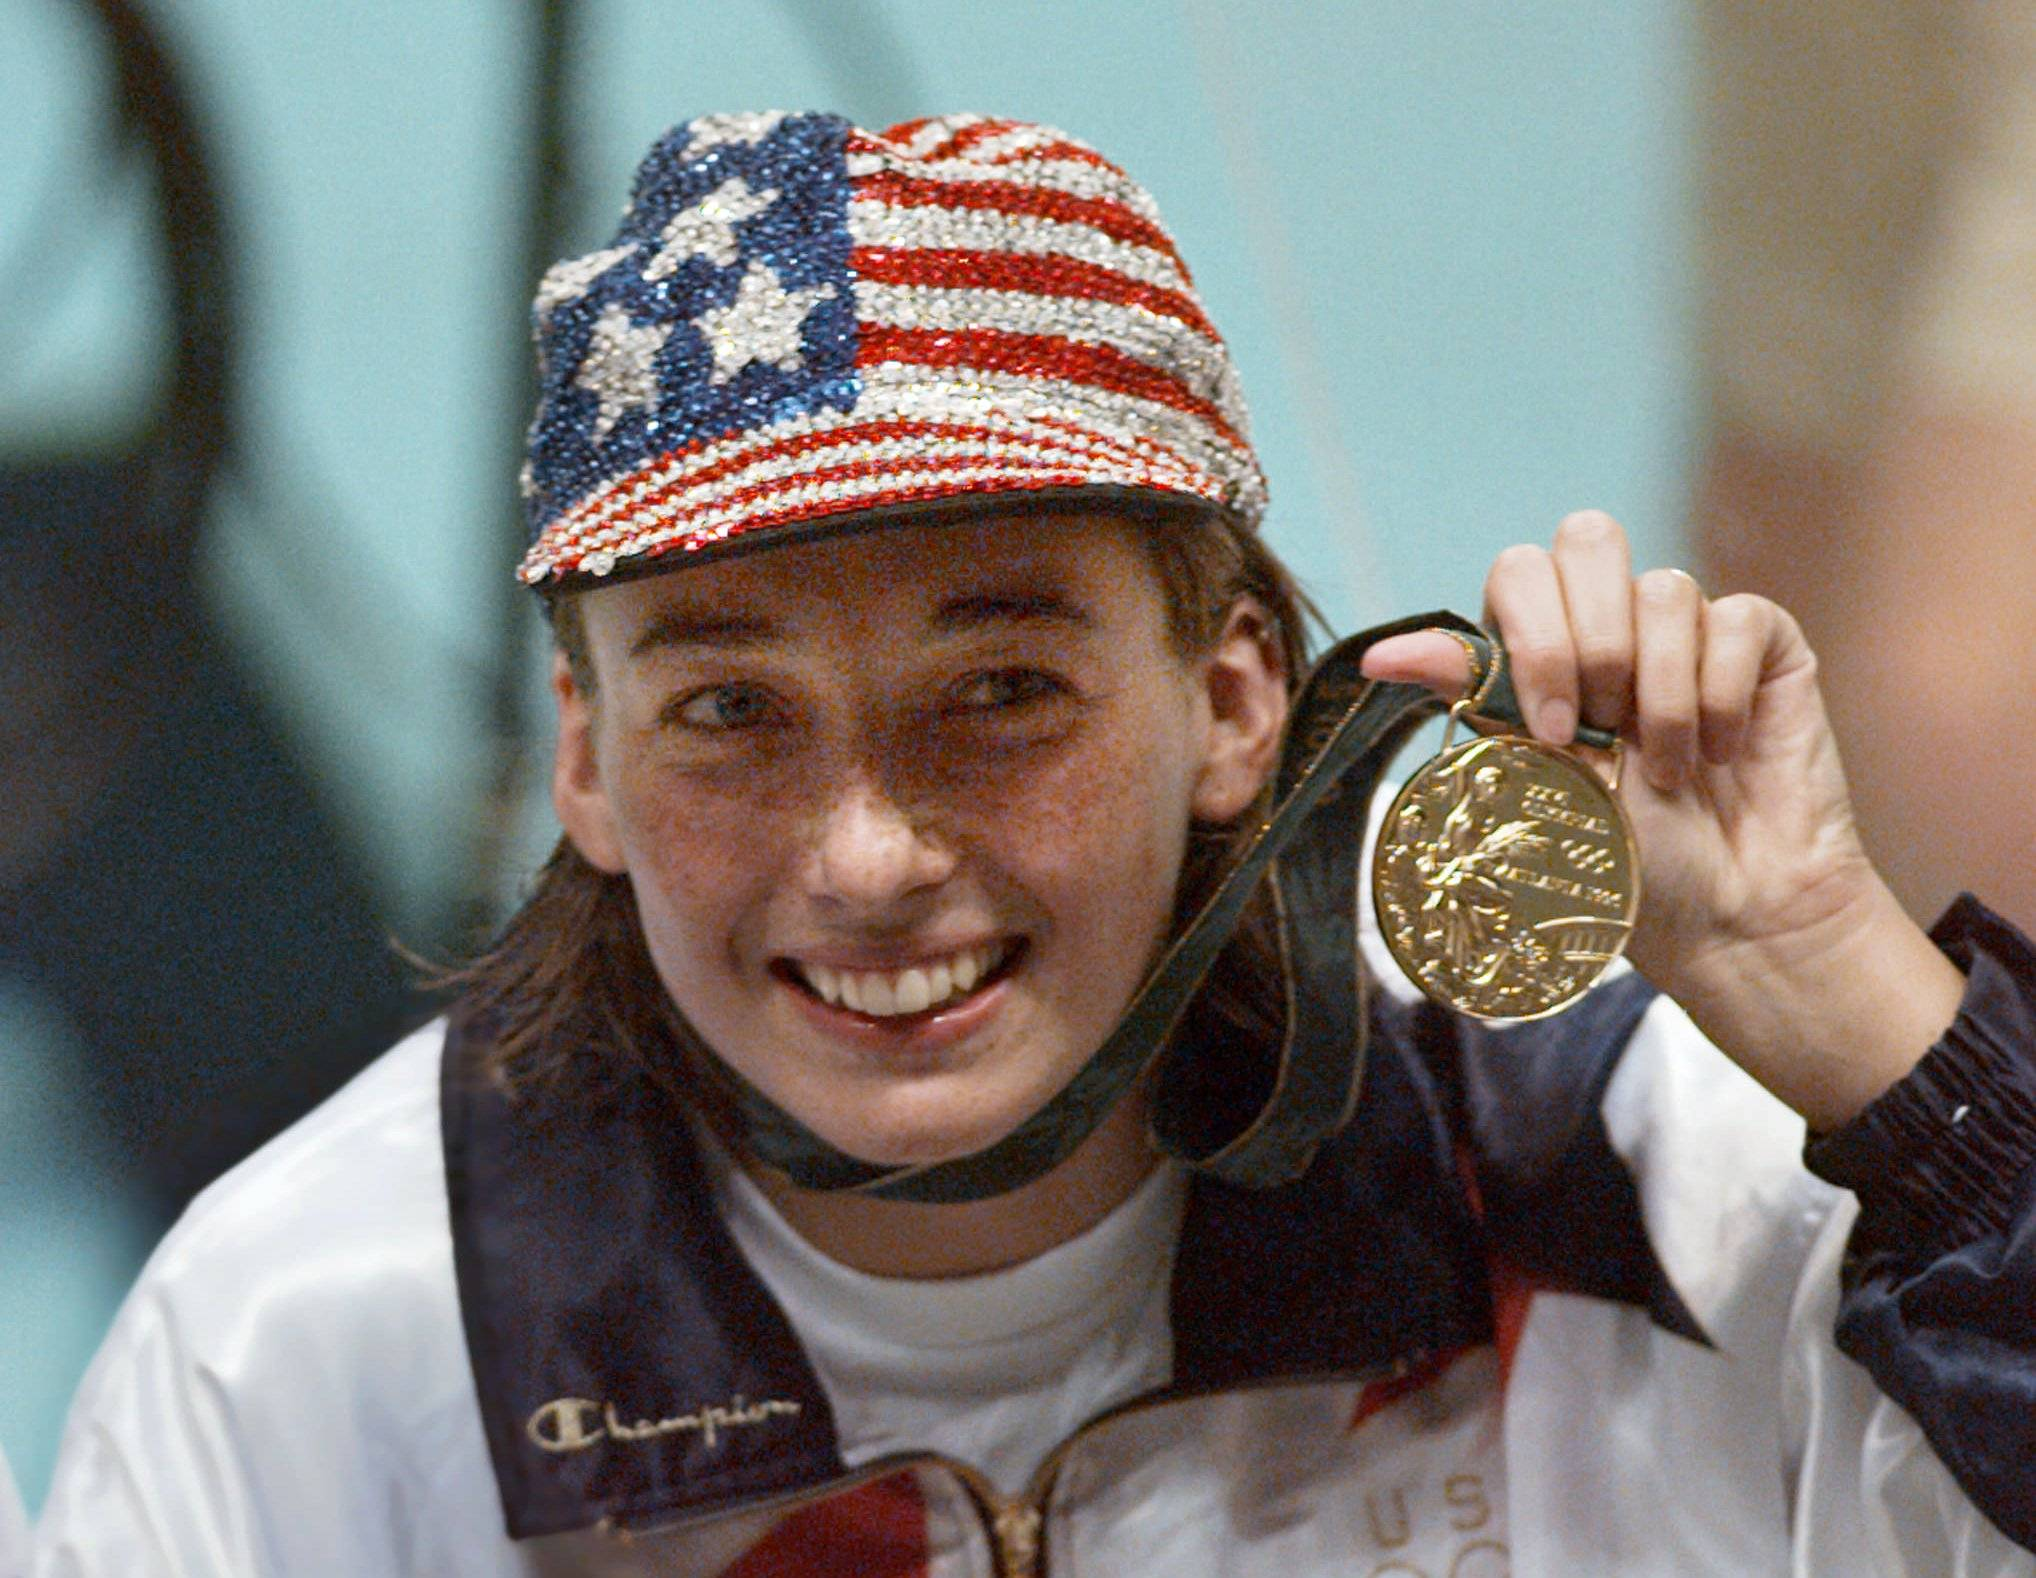 Amy Van Dyken holds her gold medal after winning the women's 50 meter freestyle at the 1996 Summer Olympic Games in Atlanta.